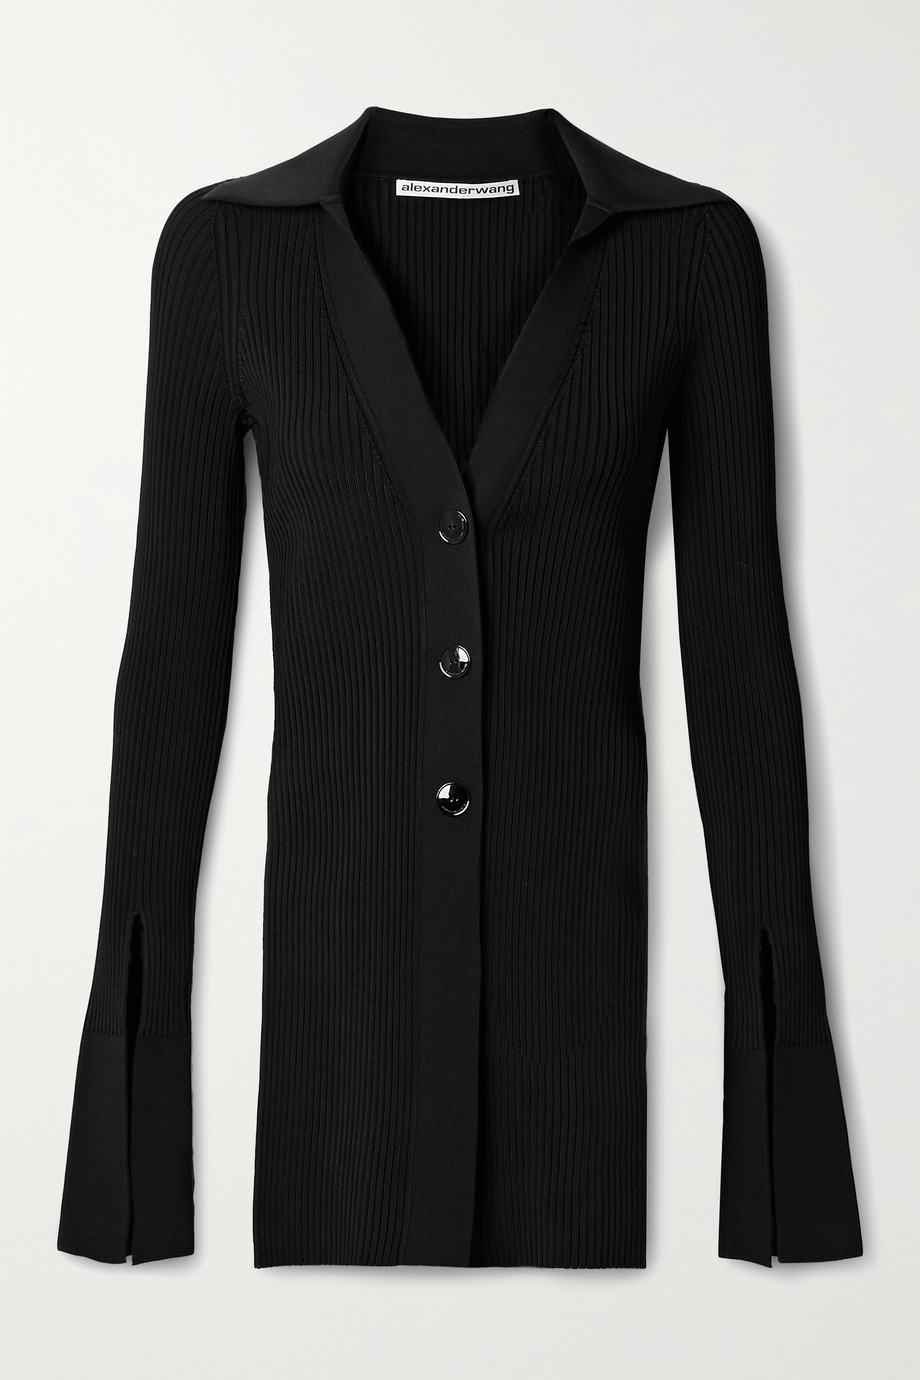 Alexander Wang Ribbed stretch-knit cardigan